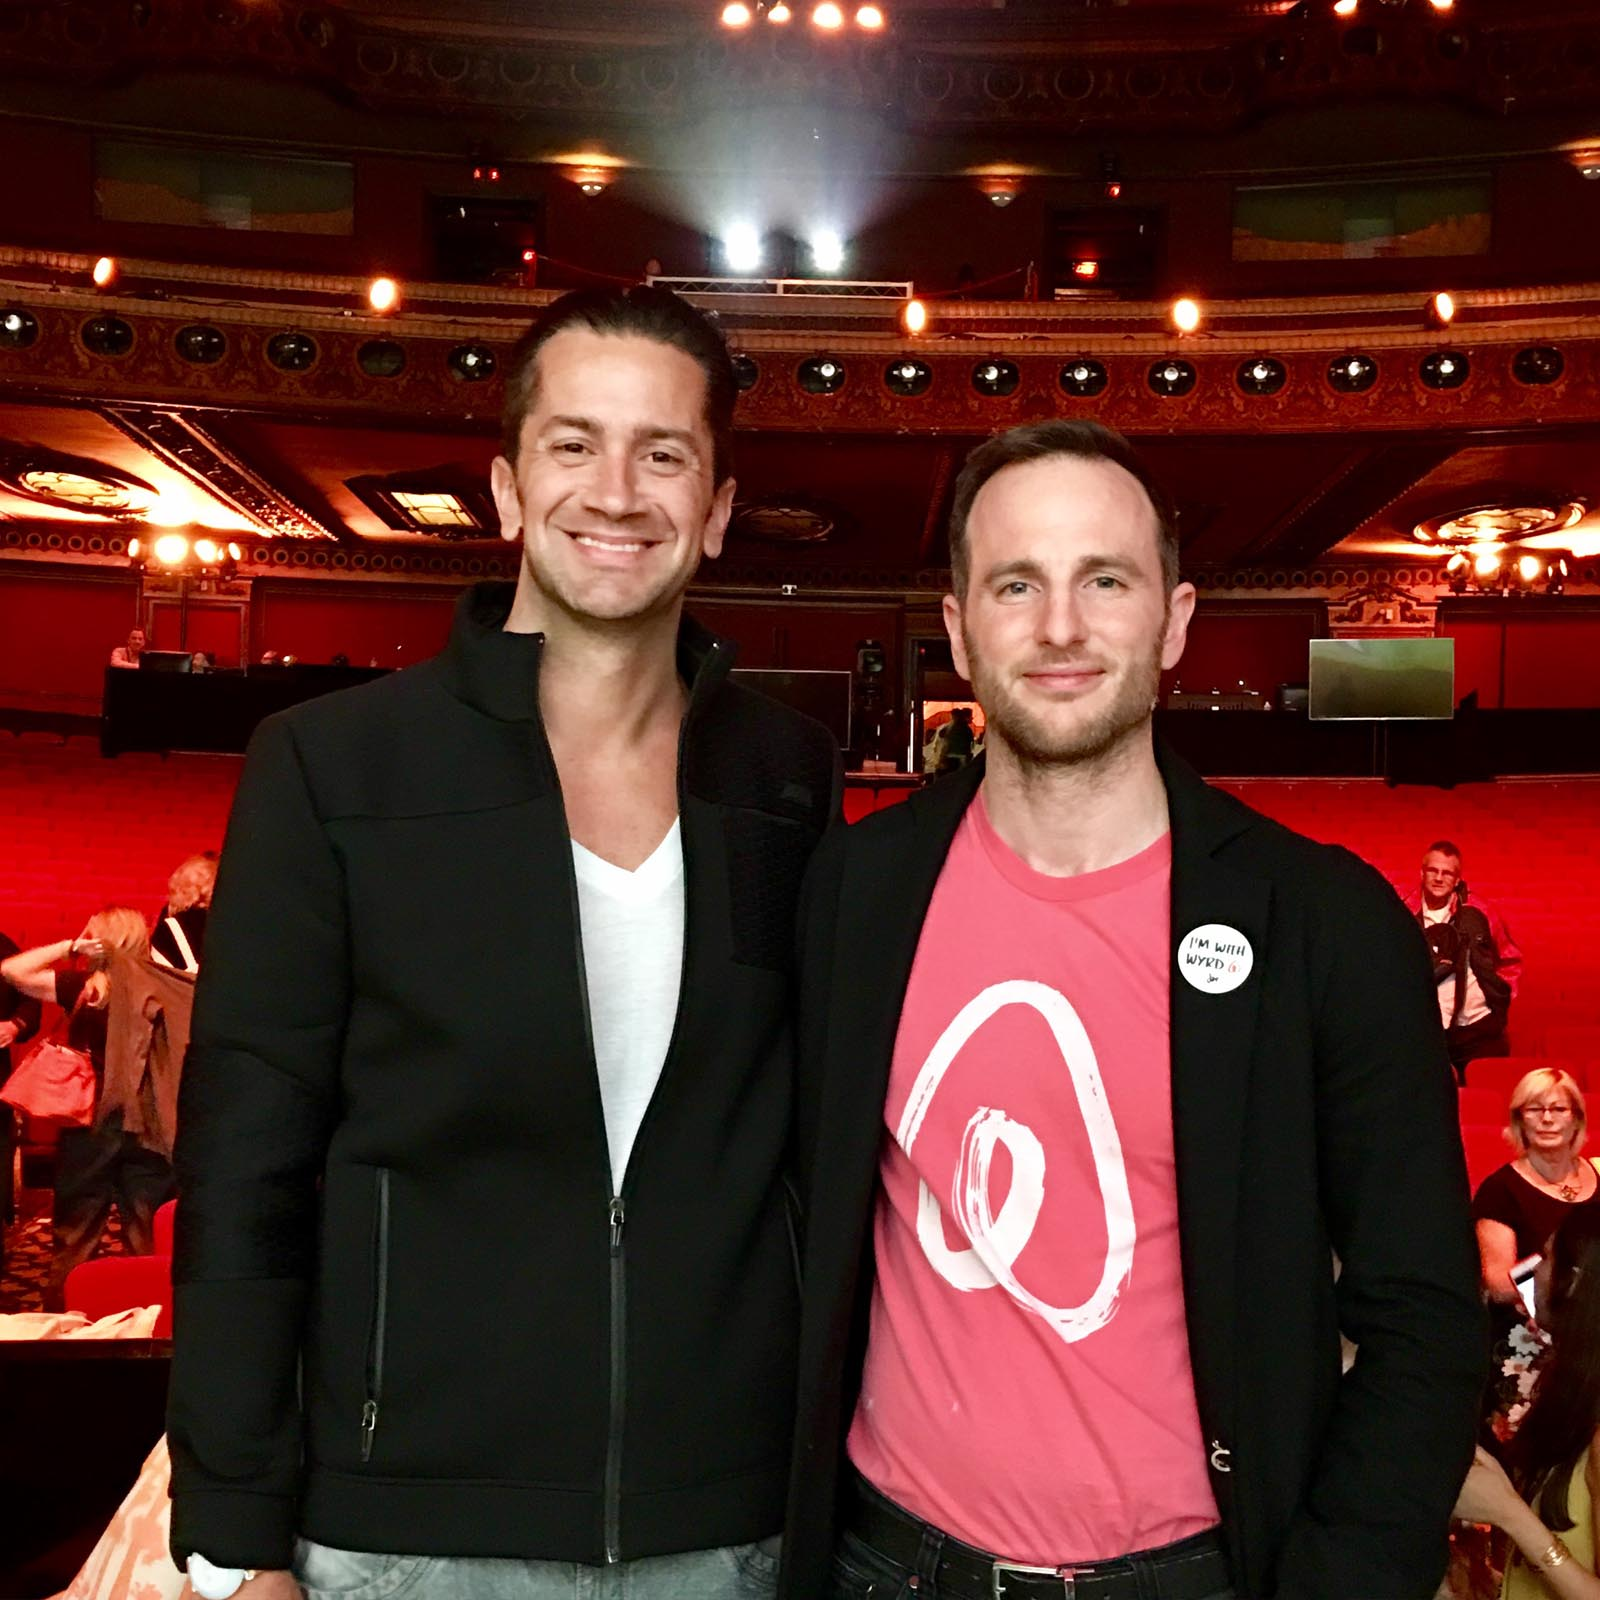 Amazing Tech Founder, Joe Gebbia, CPO of AirBnB